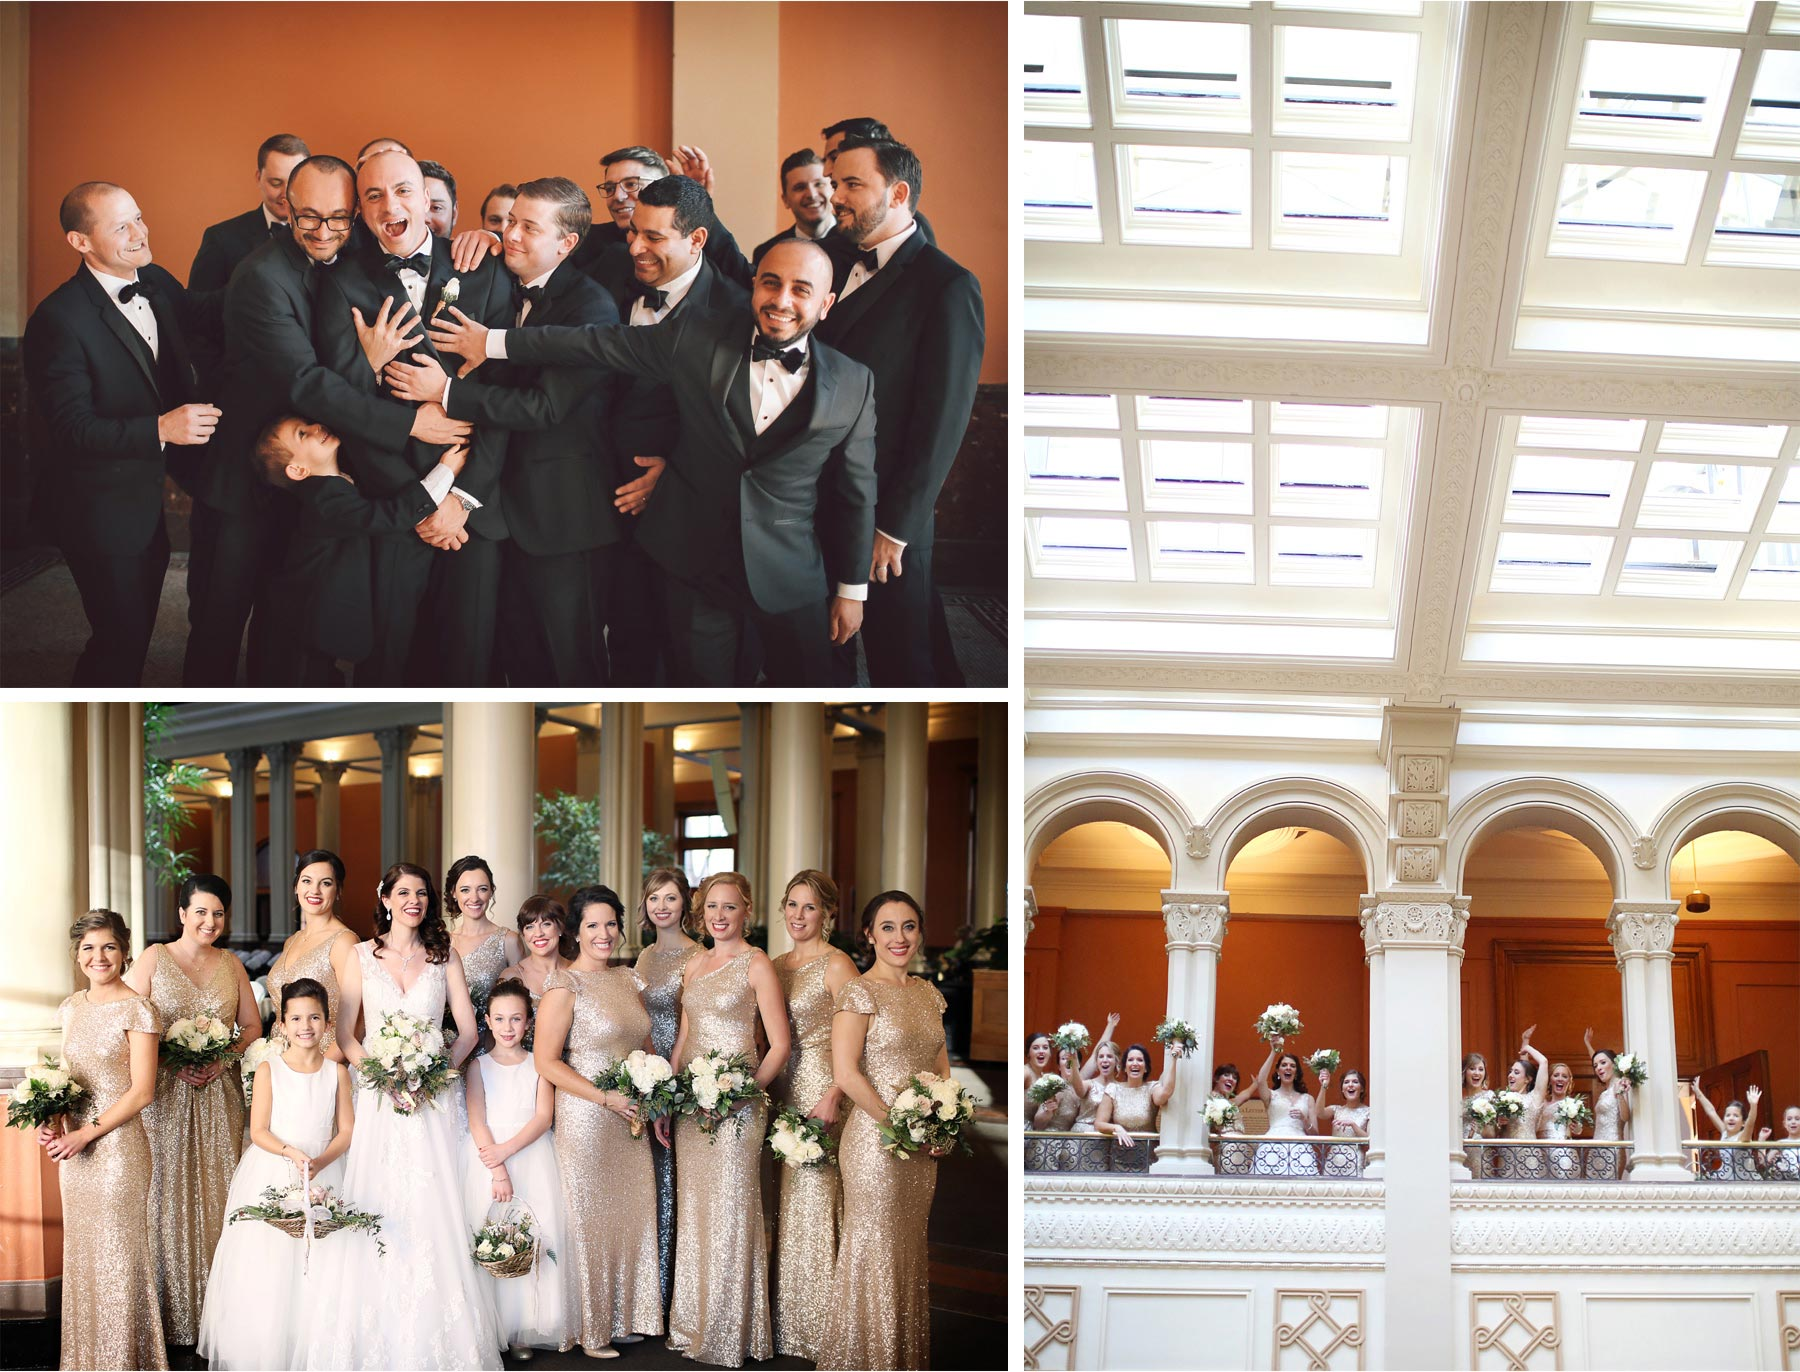 09-Saint-Paul-Minnesota-Wedding-Photographer-by-Andrew-Vick-Photography-Winter-New-Years-Eve-Landmark-Center-Bride-Groom-Bridesmaids-Groomsmen-Balcony-Vintage-Emily-and-Michael.jpg